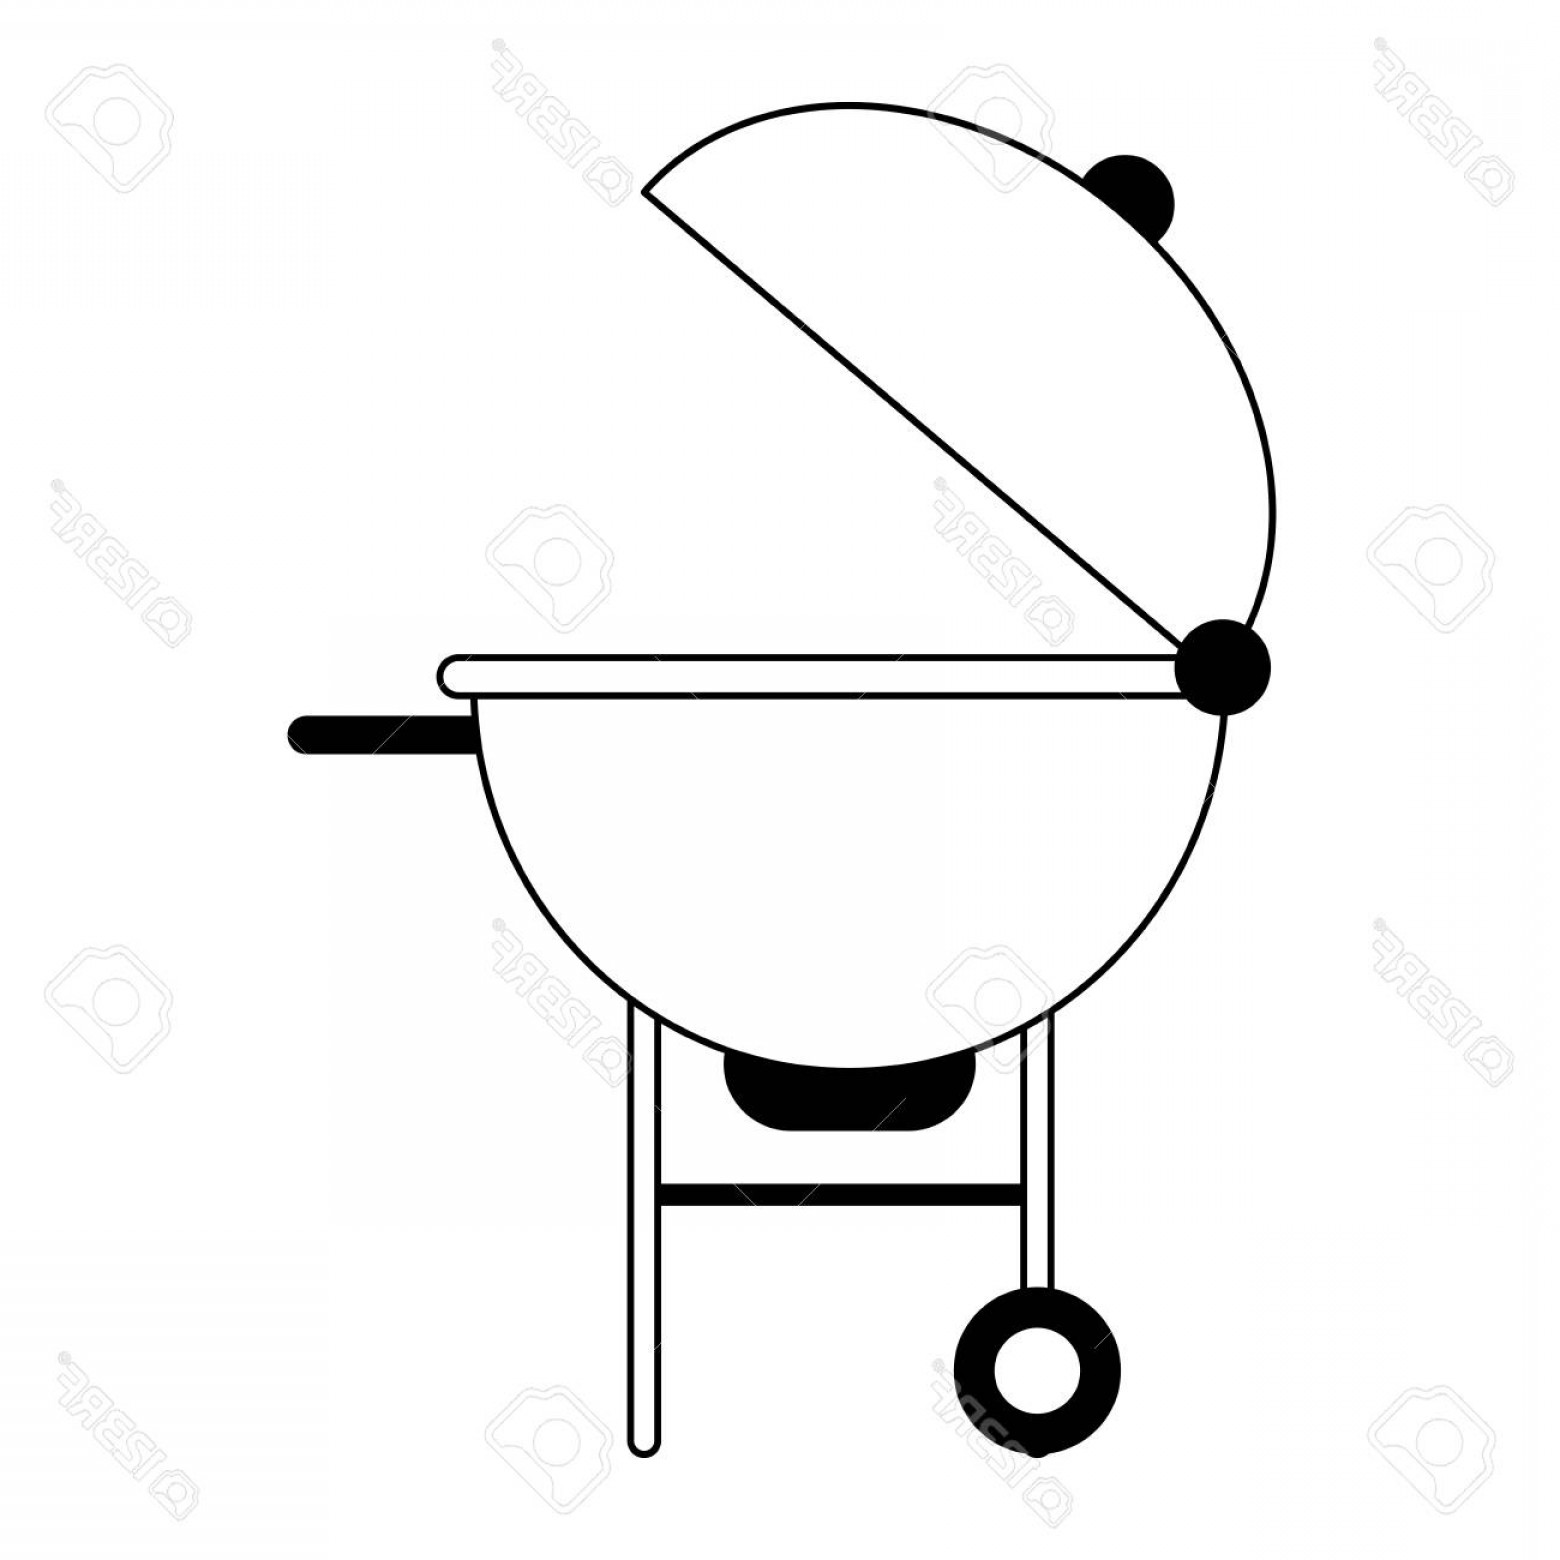 BBQ Grill Vector Black And White: Photostock Vector Bbq Grill Icon Image Vector Illustration Design Black And White